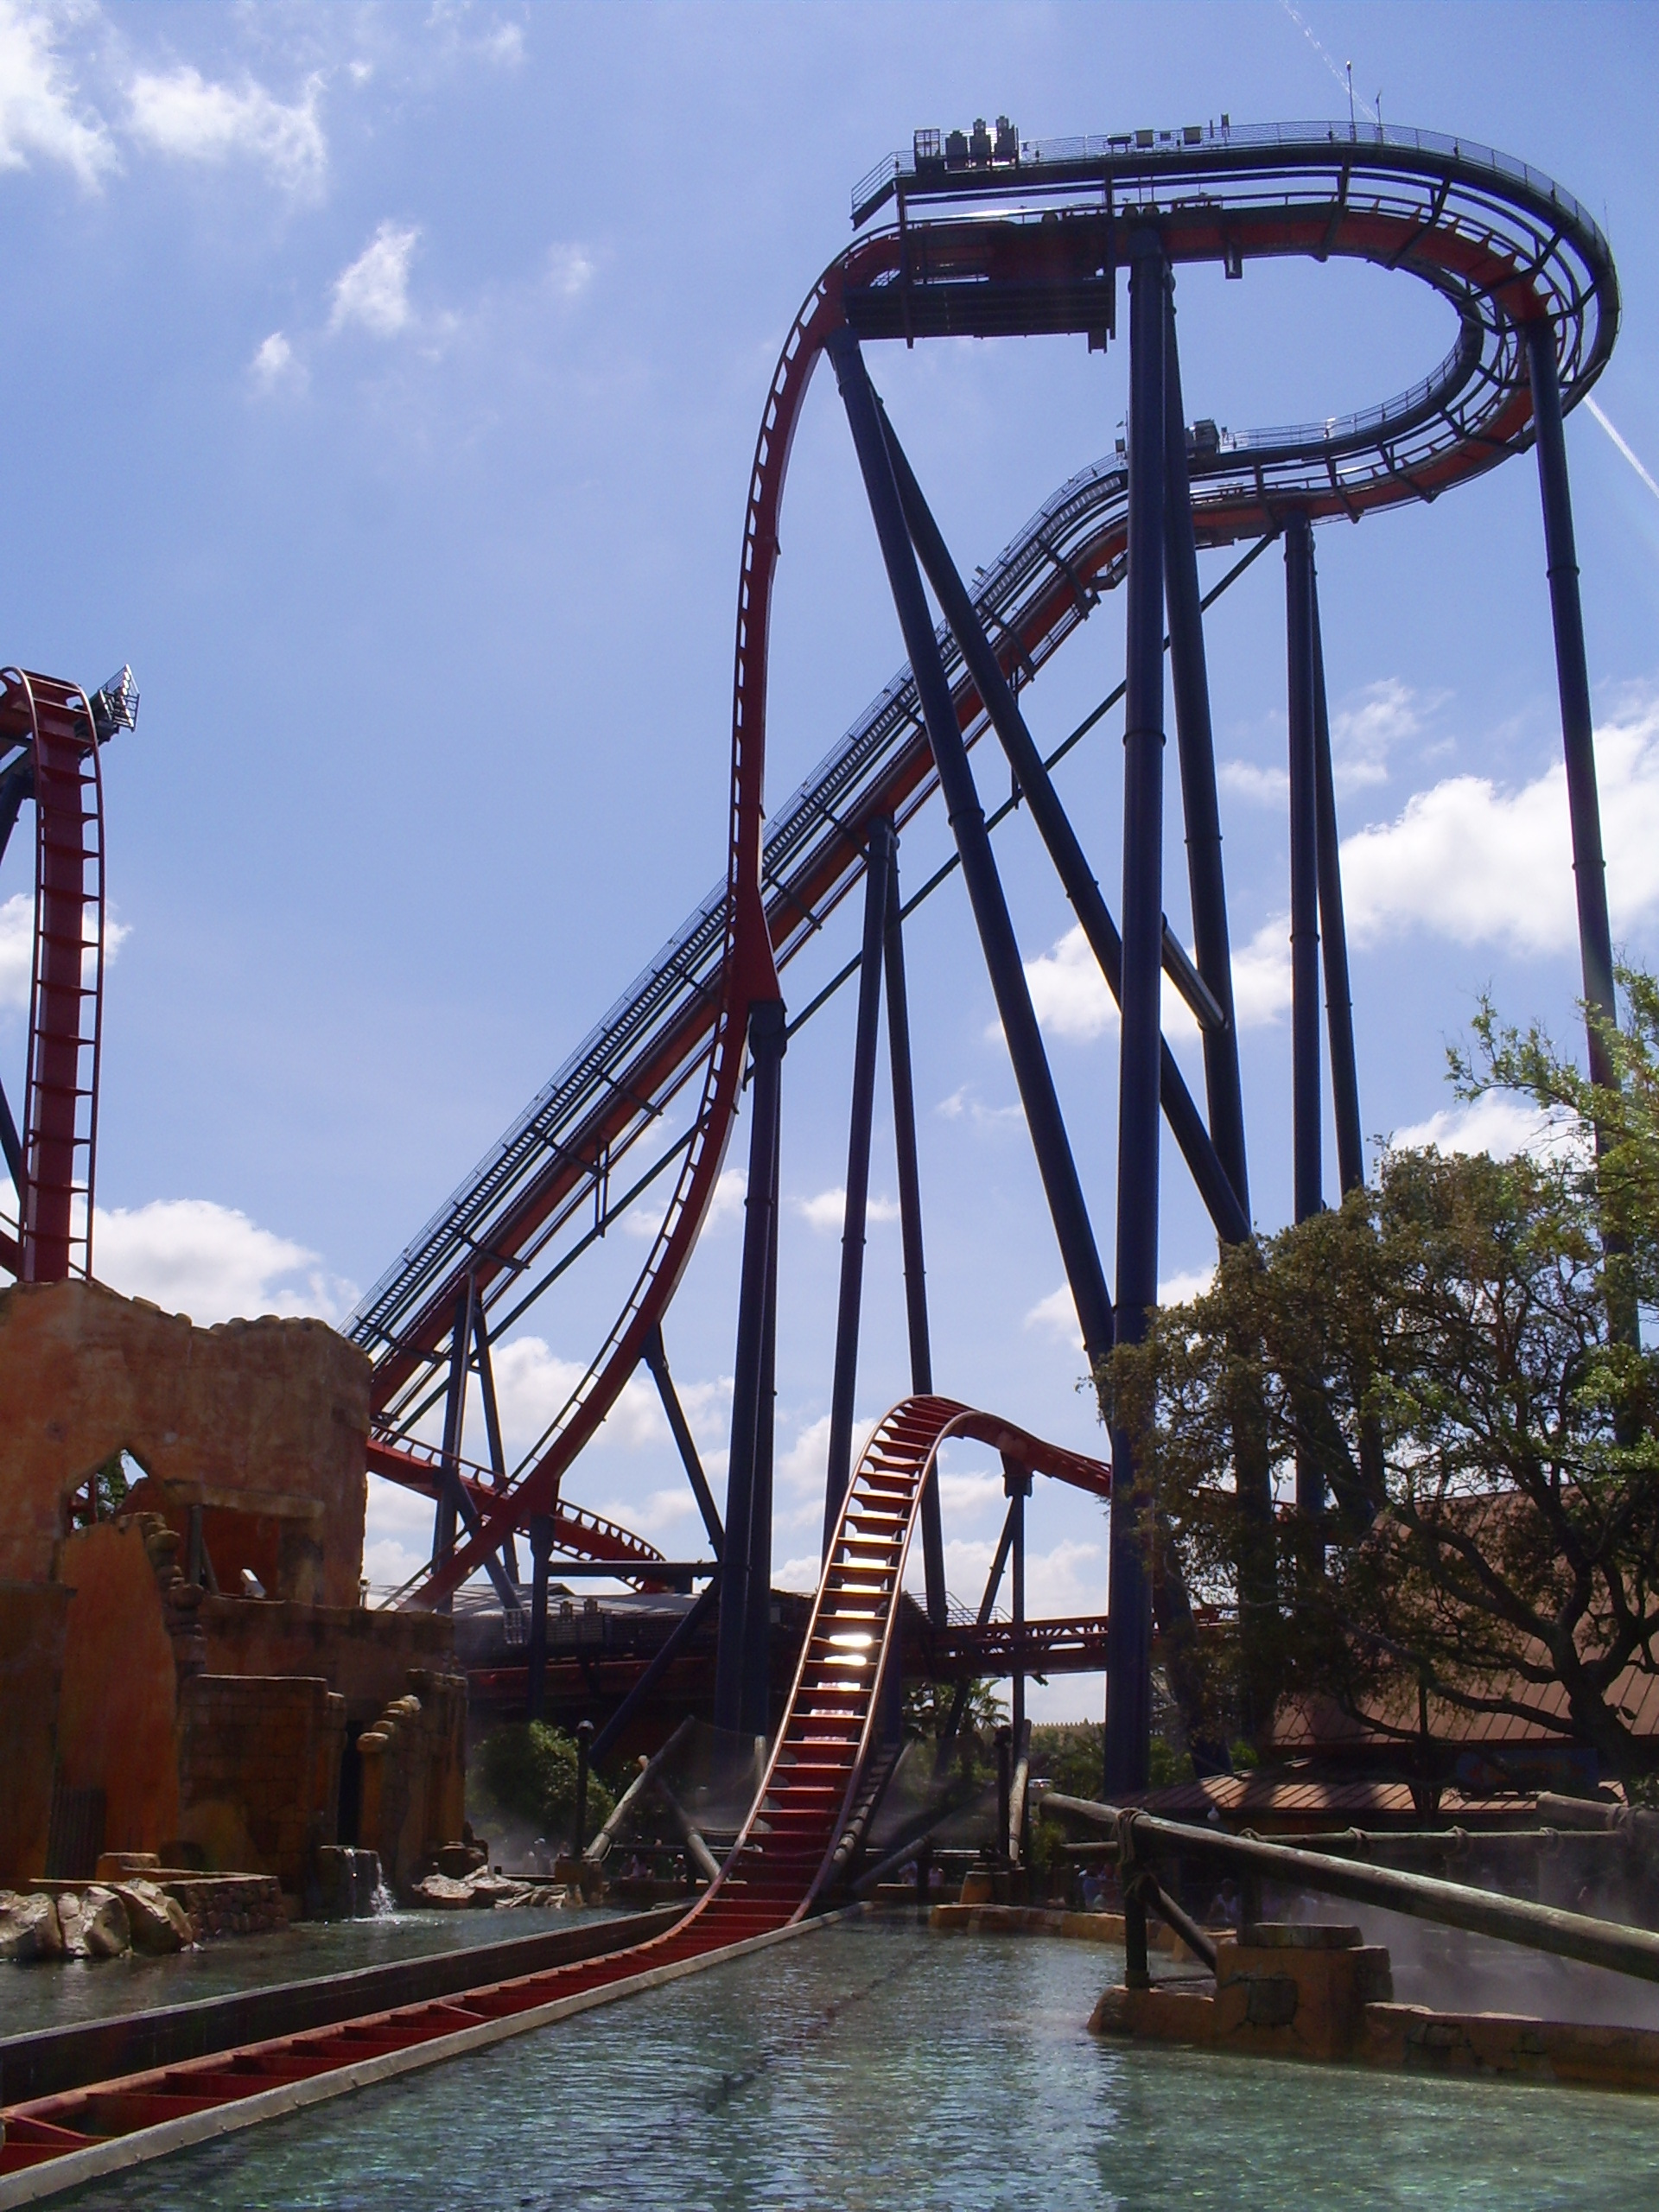 Top 10 roller coasters in orlando cultural travel guide - Roller coasters at busch gardens ...